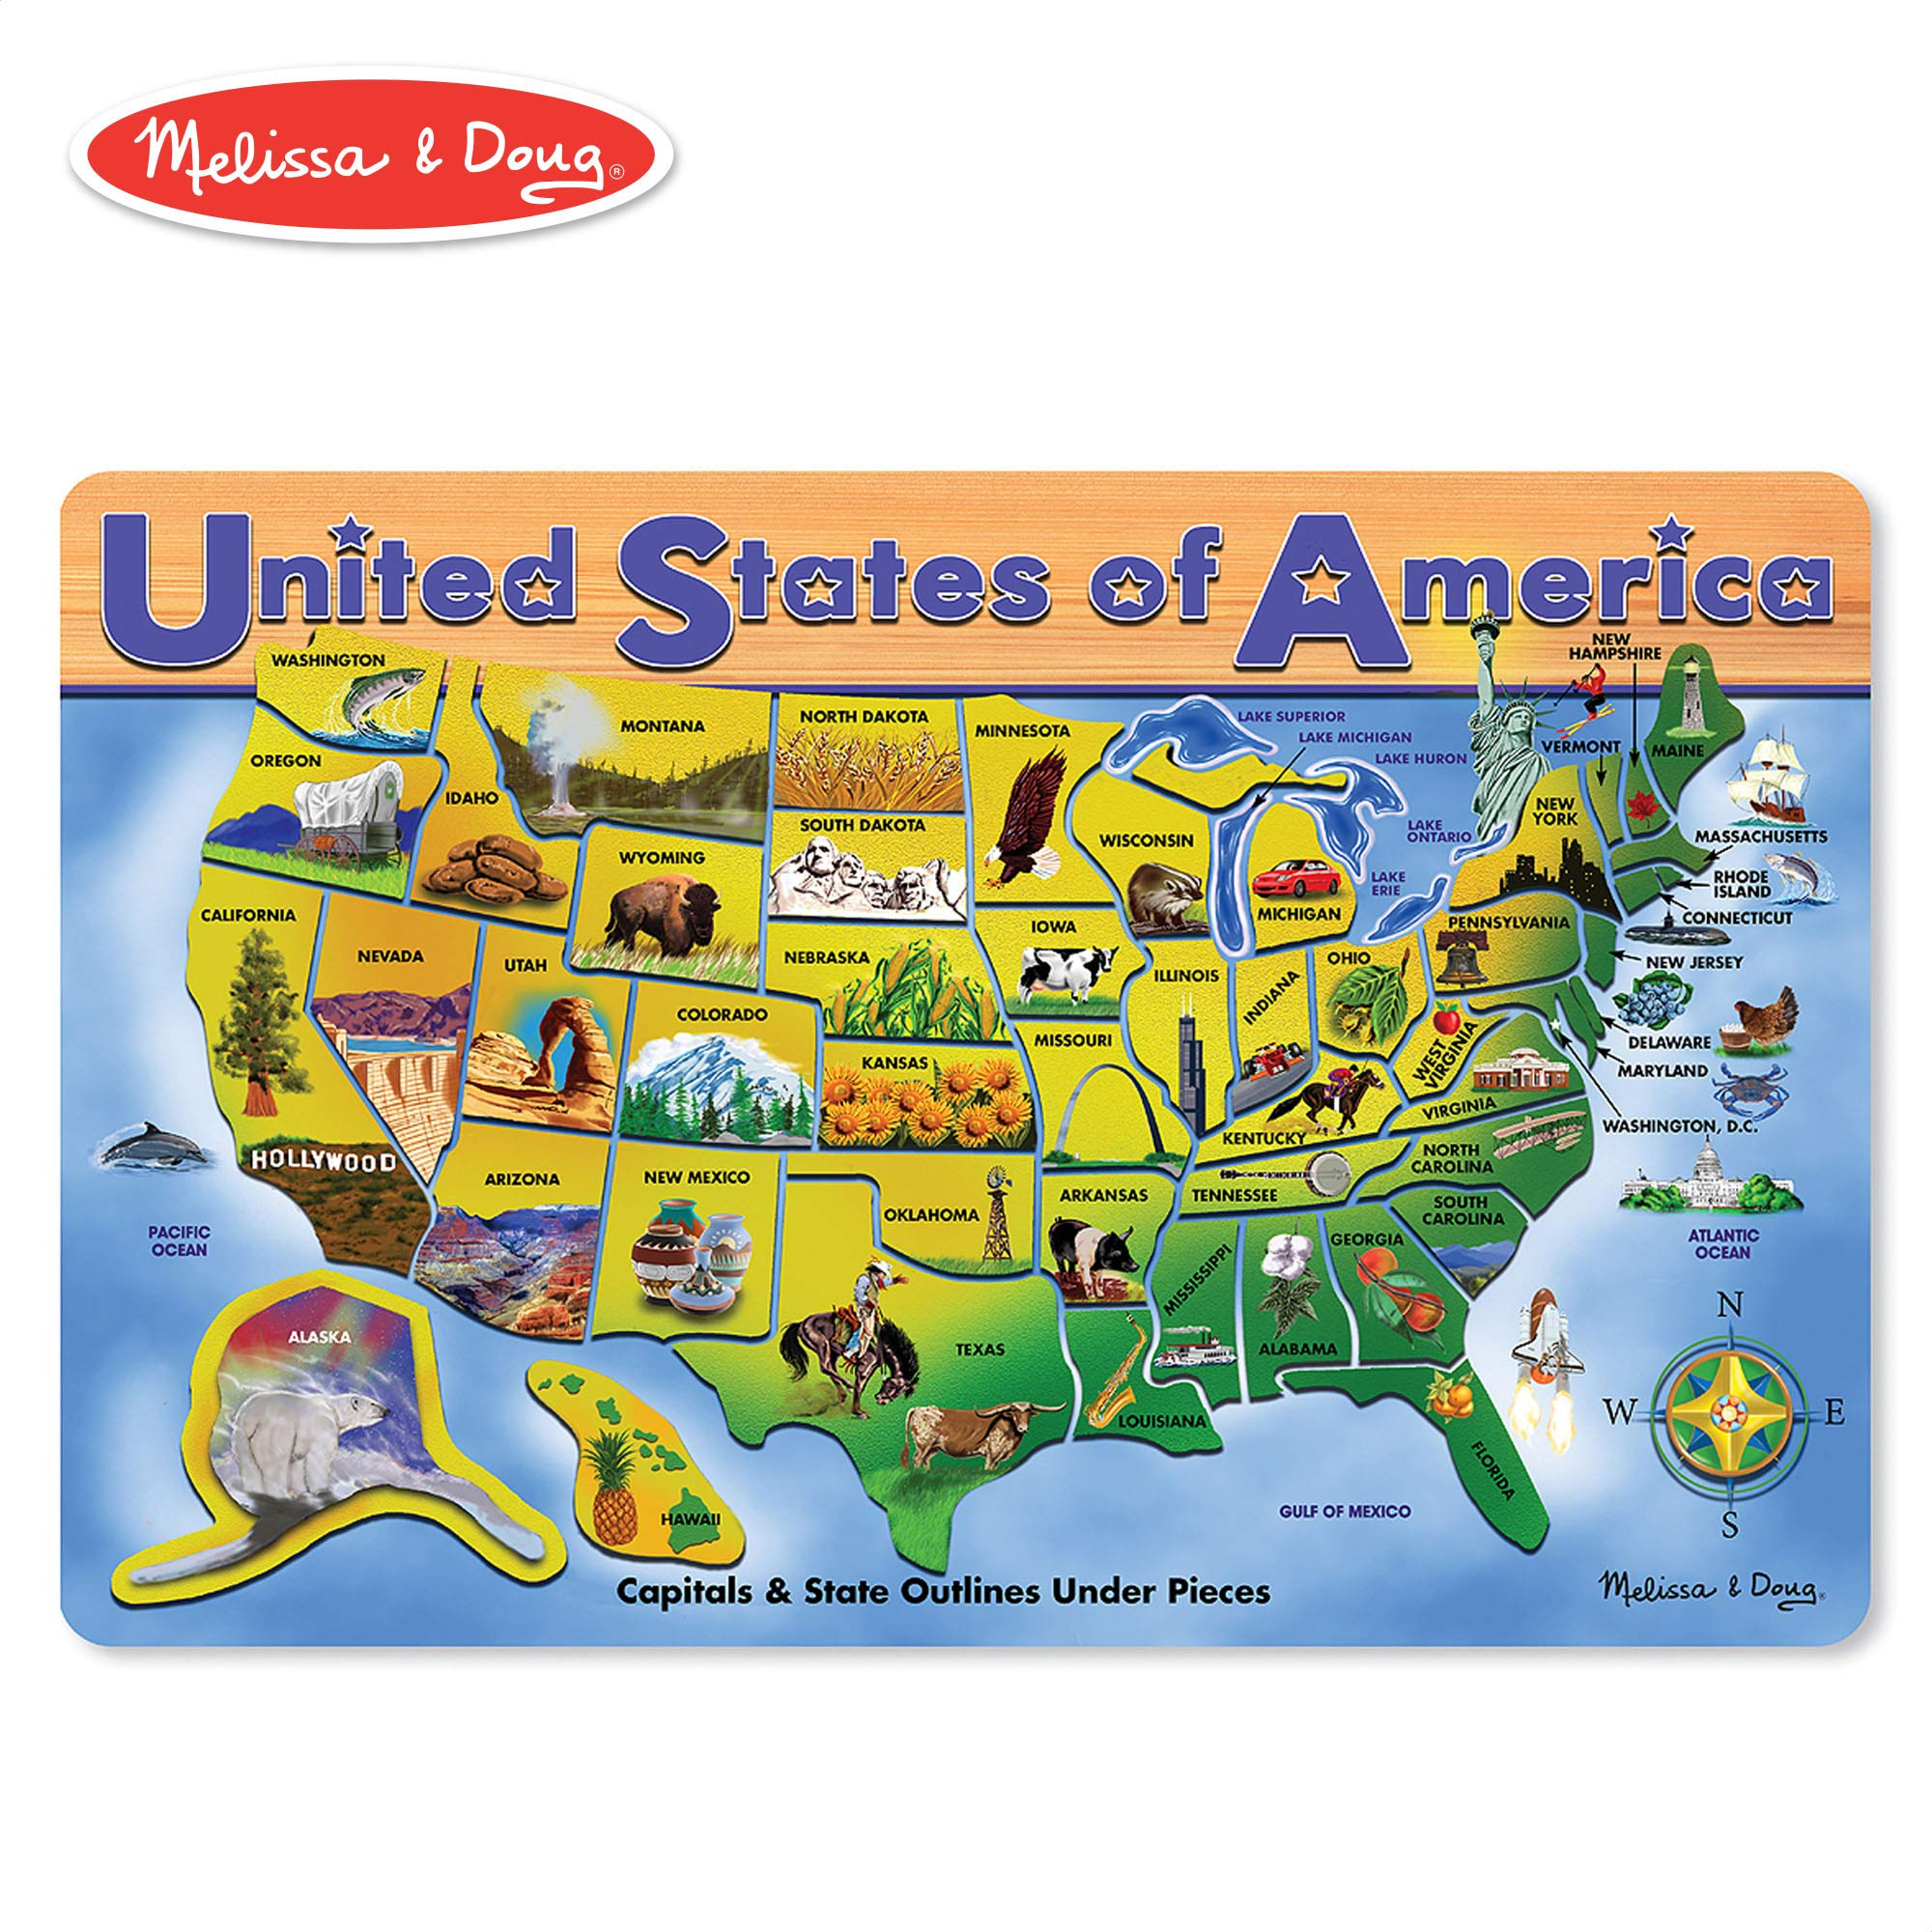 Melissa & Doug Wooden USA Map Puzzle, Wipe-Clean Surface, Teaches Geography & Shapes, 45 Pieces, 18.2″ H × 11.6″ W × 0.45″ L by Melissa & Doug